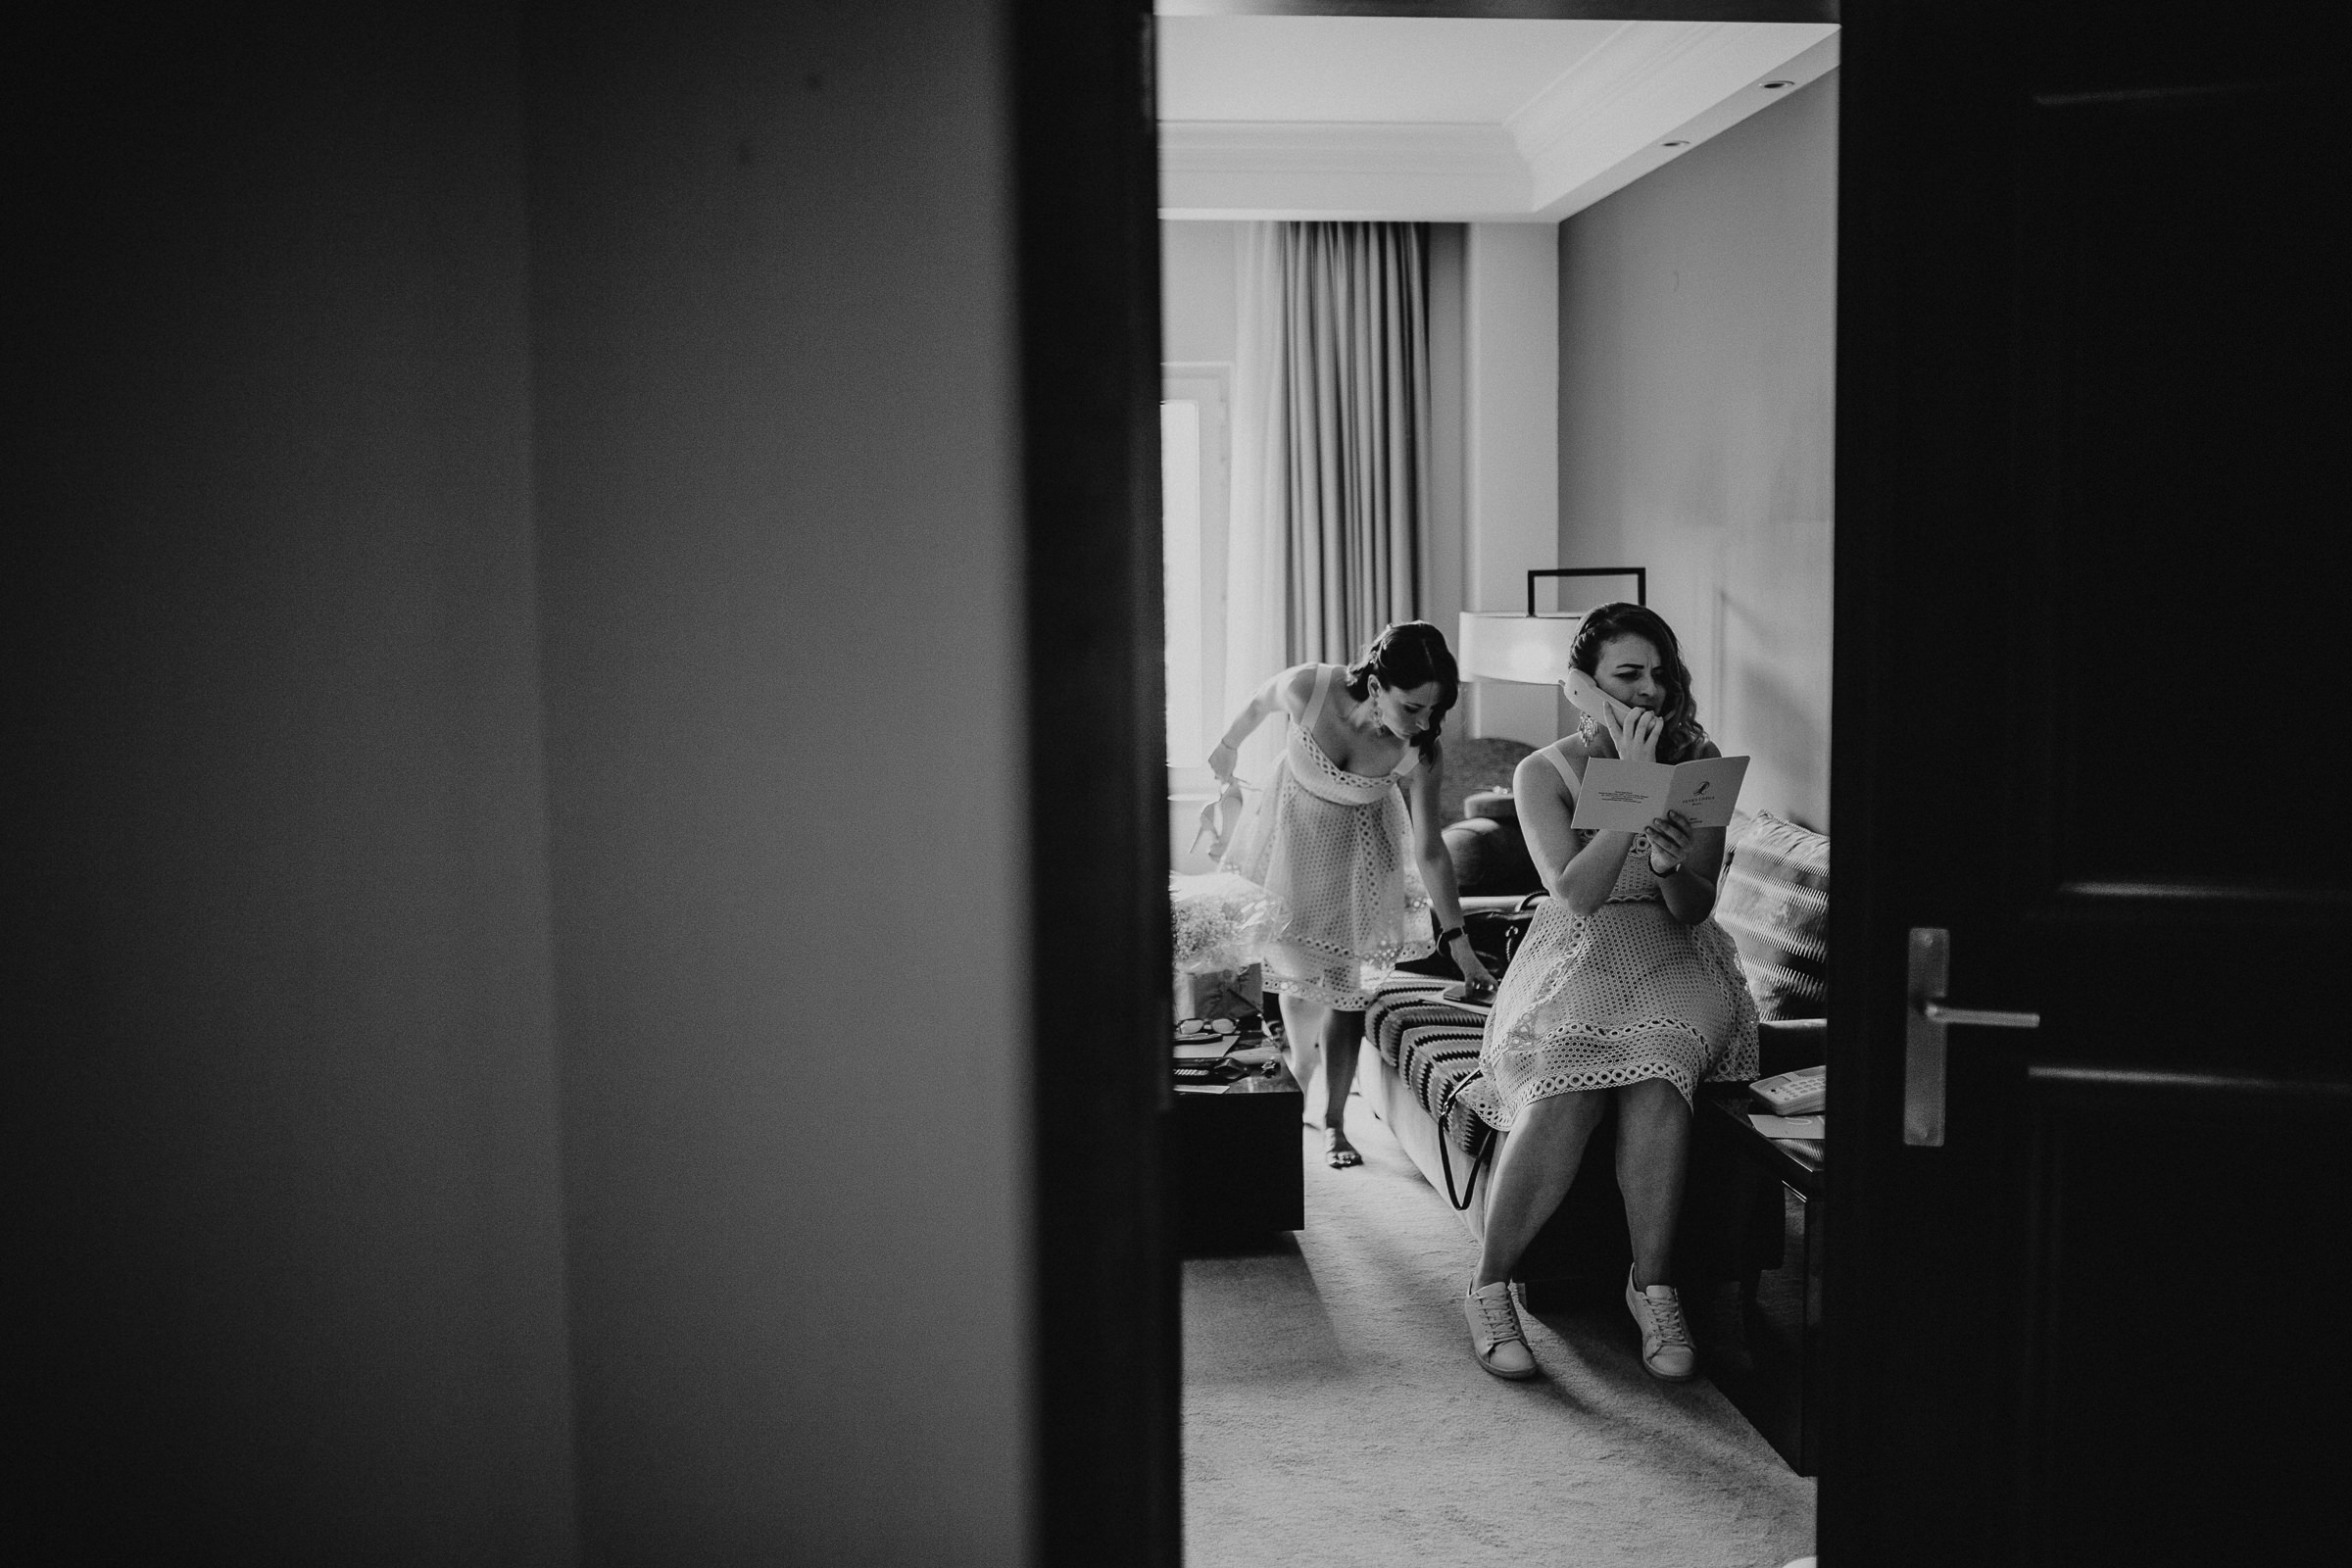 Bridesmaids with vintage look in an hotel room ordering food by phone